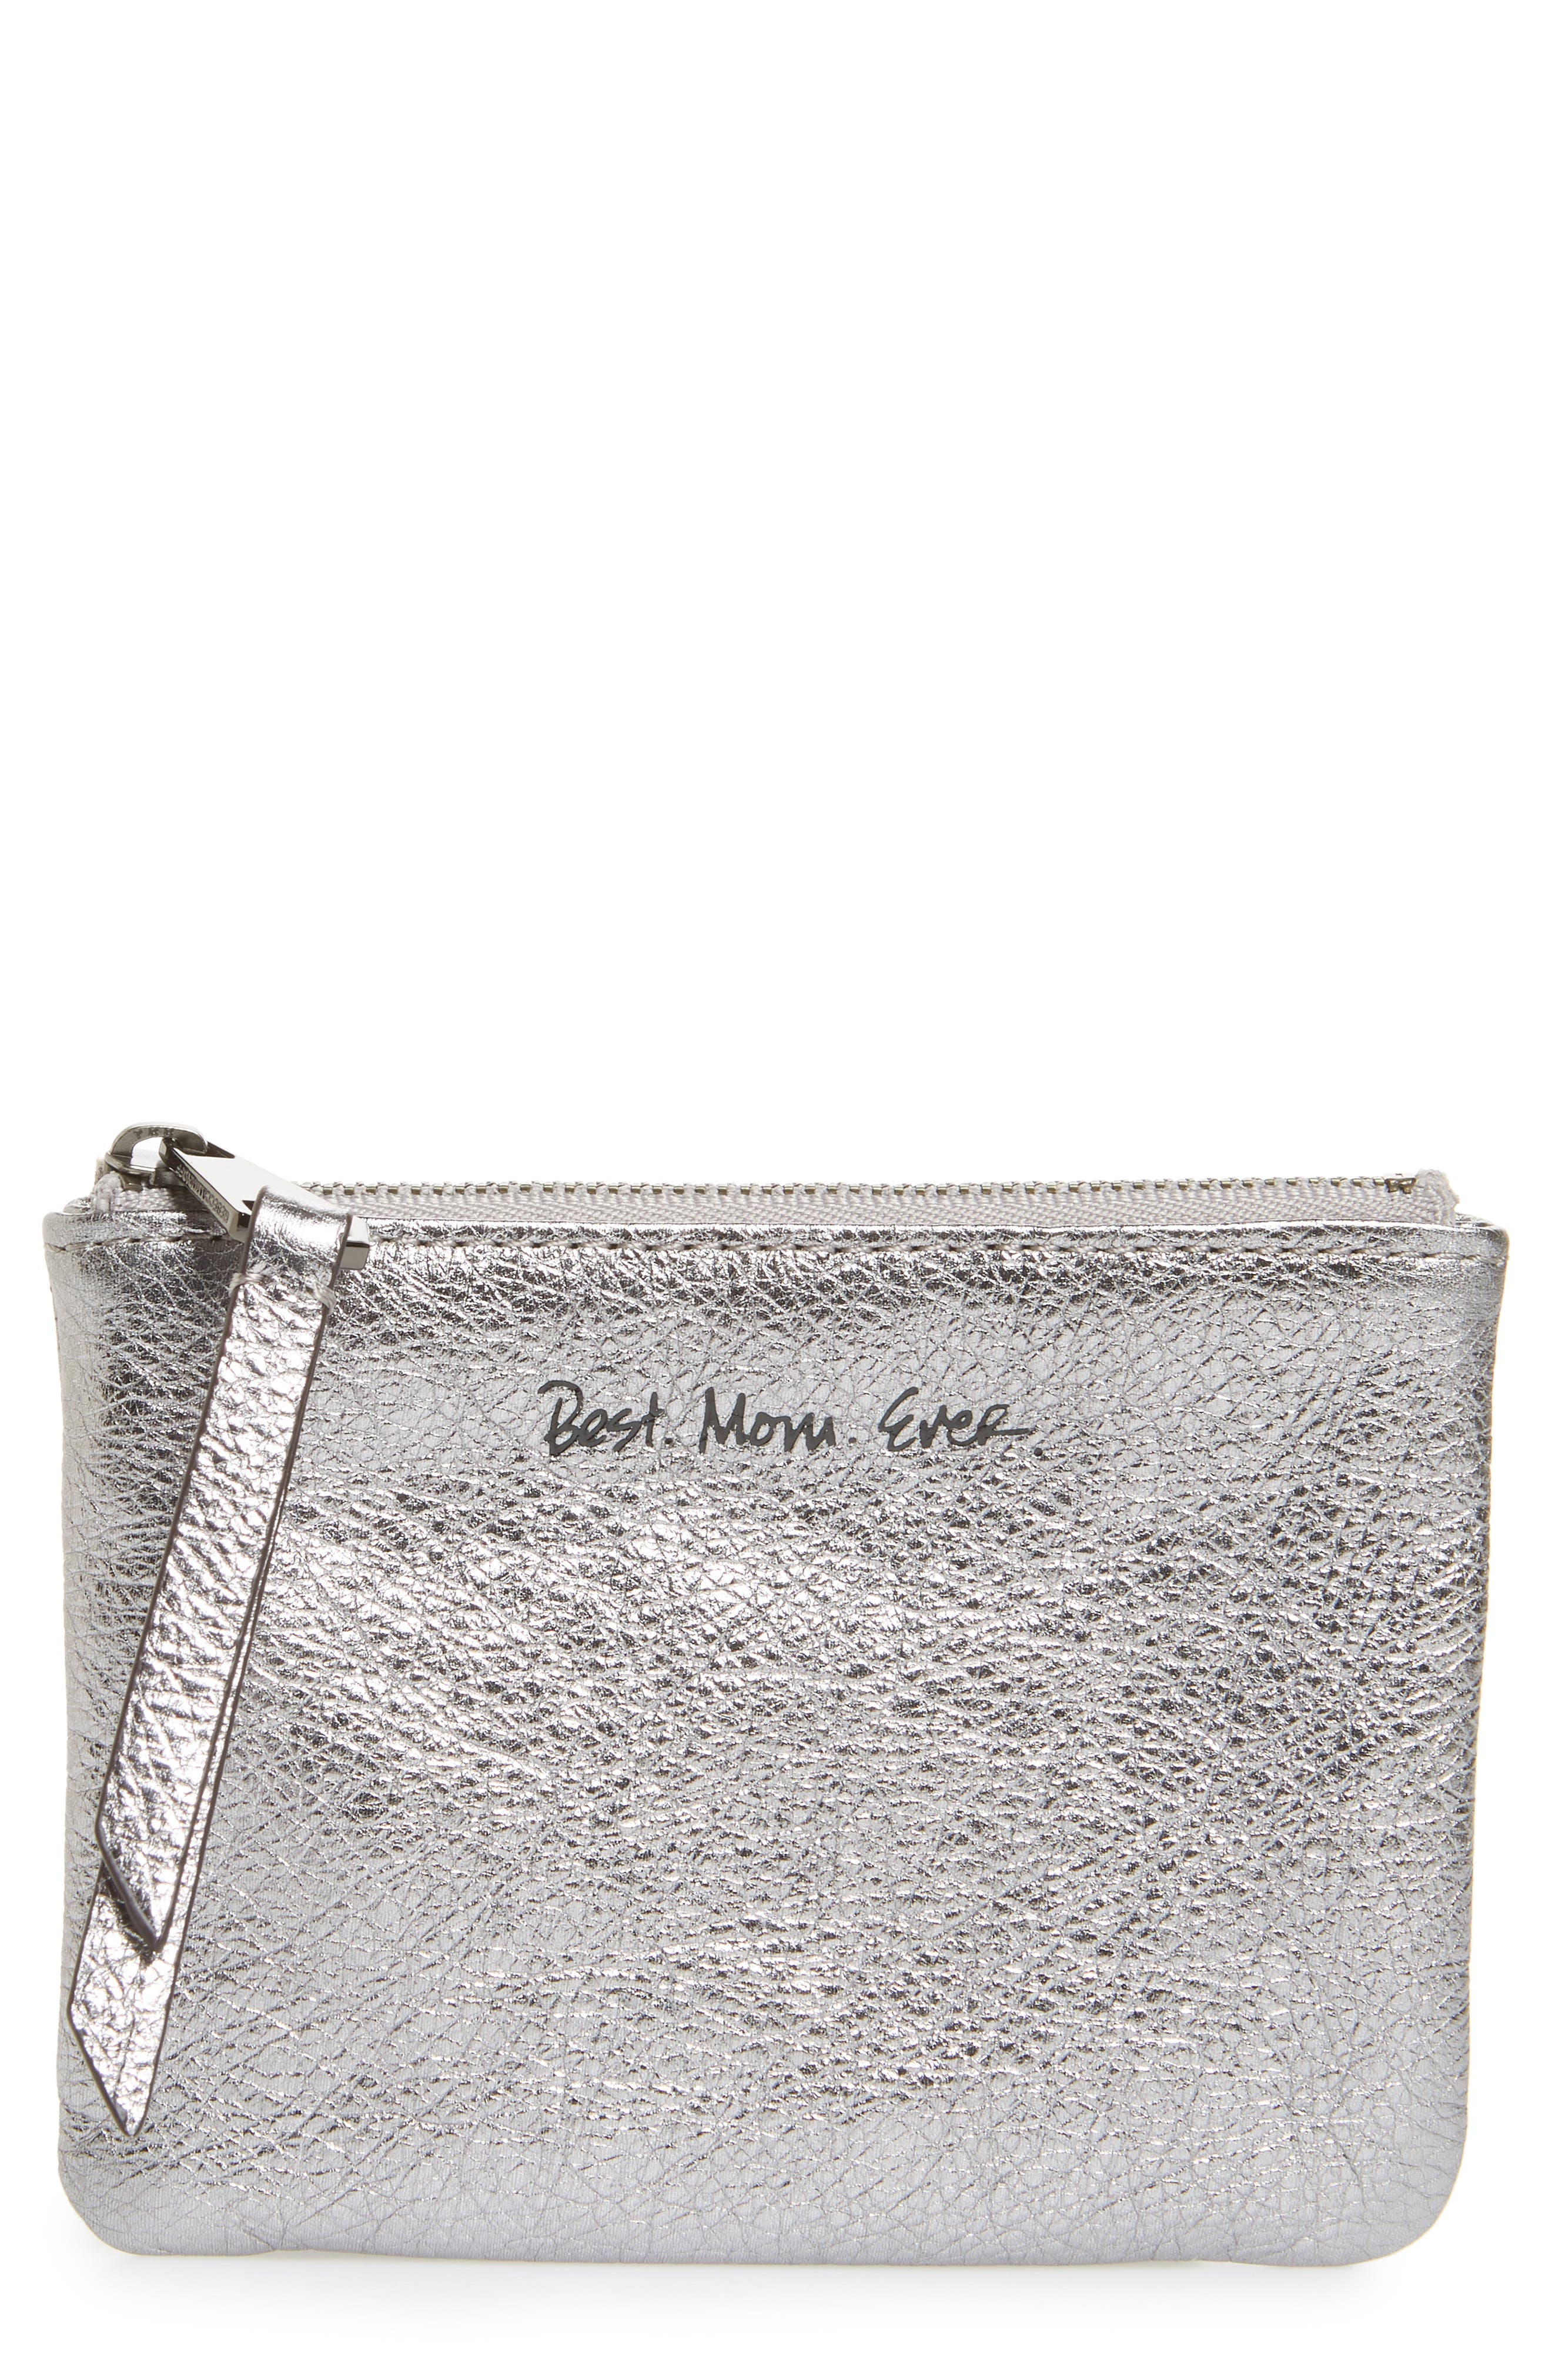 Betty - Best Mom Ever Leather Pouch,                             Main thumbnail 1, color,                             041